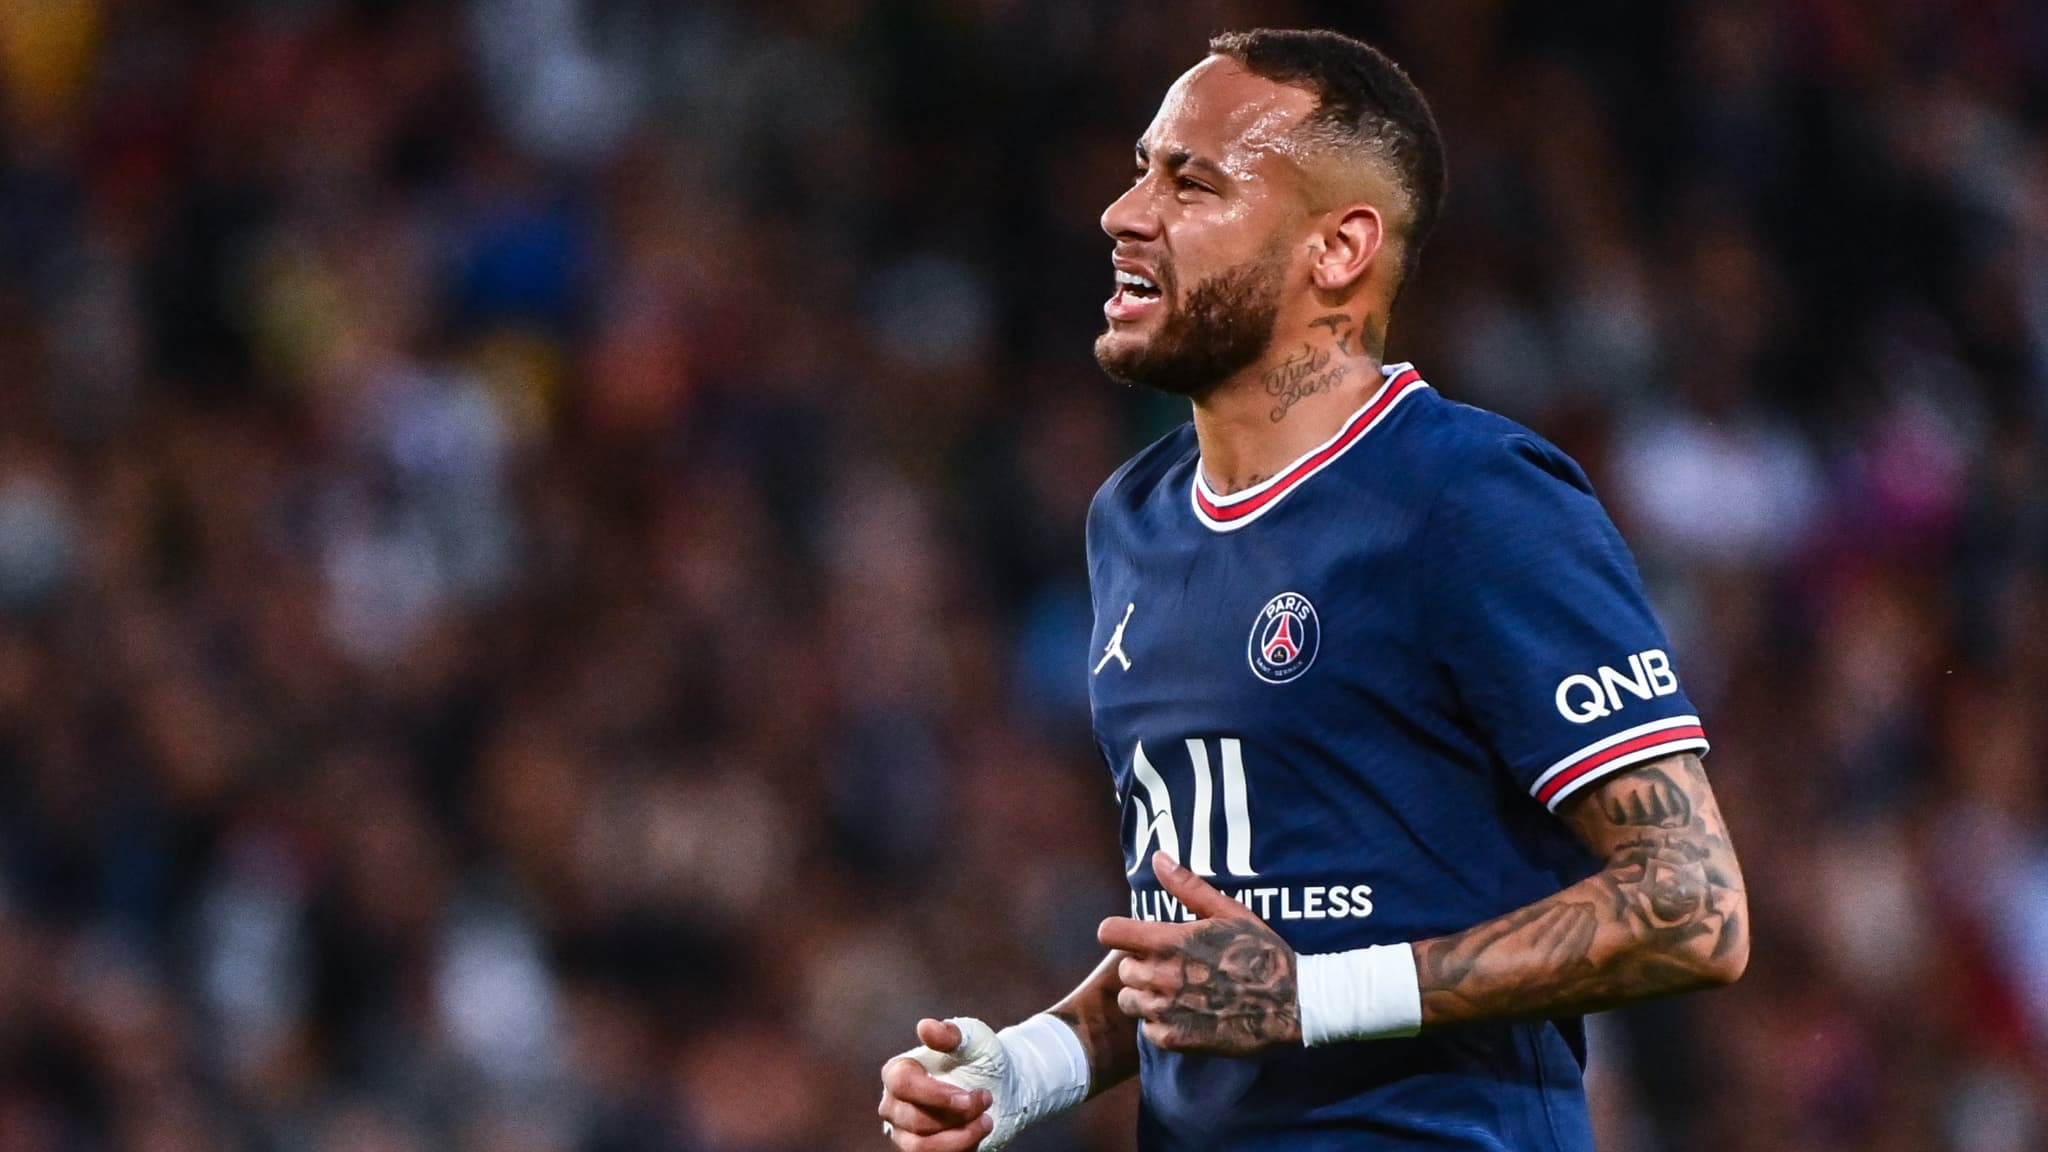 Neymar available for the classic OM-PSG